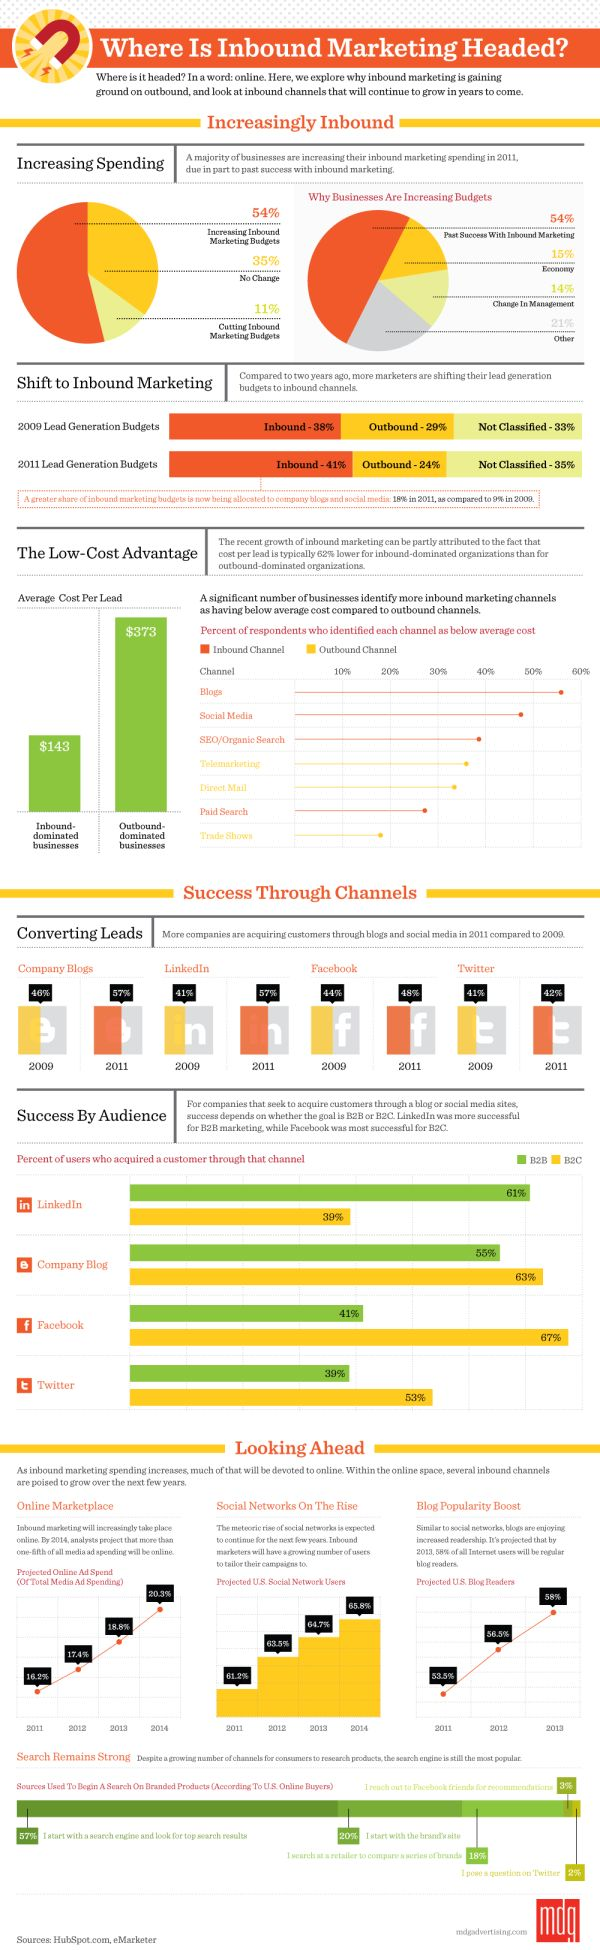 [Infographic]: Where is Inbound Marketing Headed?: http://www.heuvelmarketing.com/inbound-marketing-blog/bid/54968/Infographic-Where-is-Inbound-Marketing-Headed #infographic #b2b #marketing #inboundmarketing